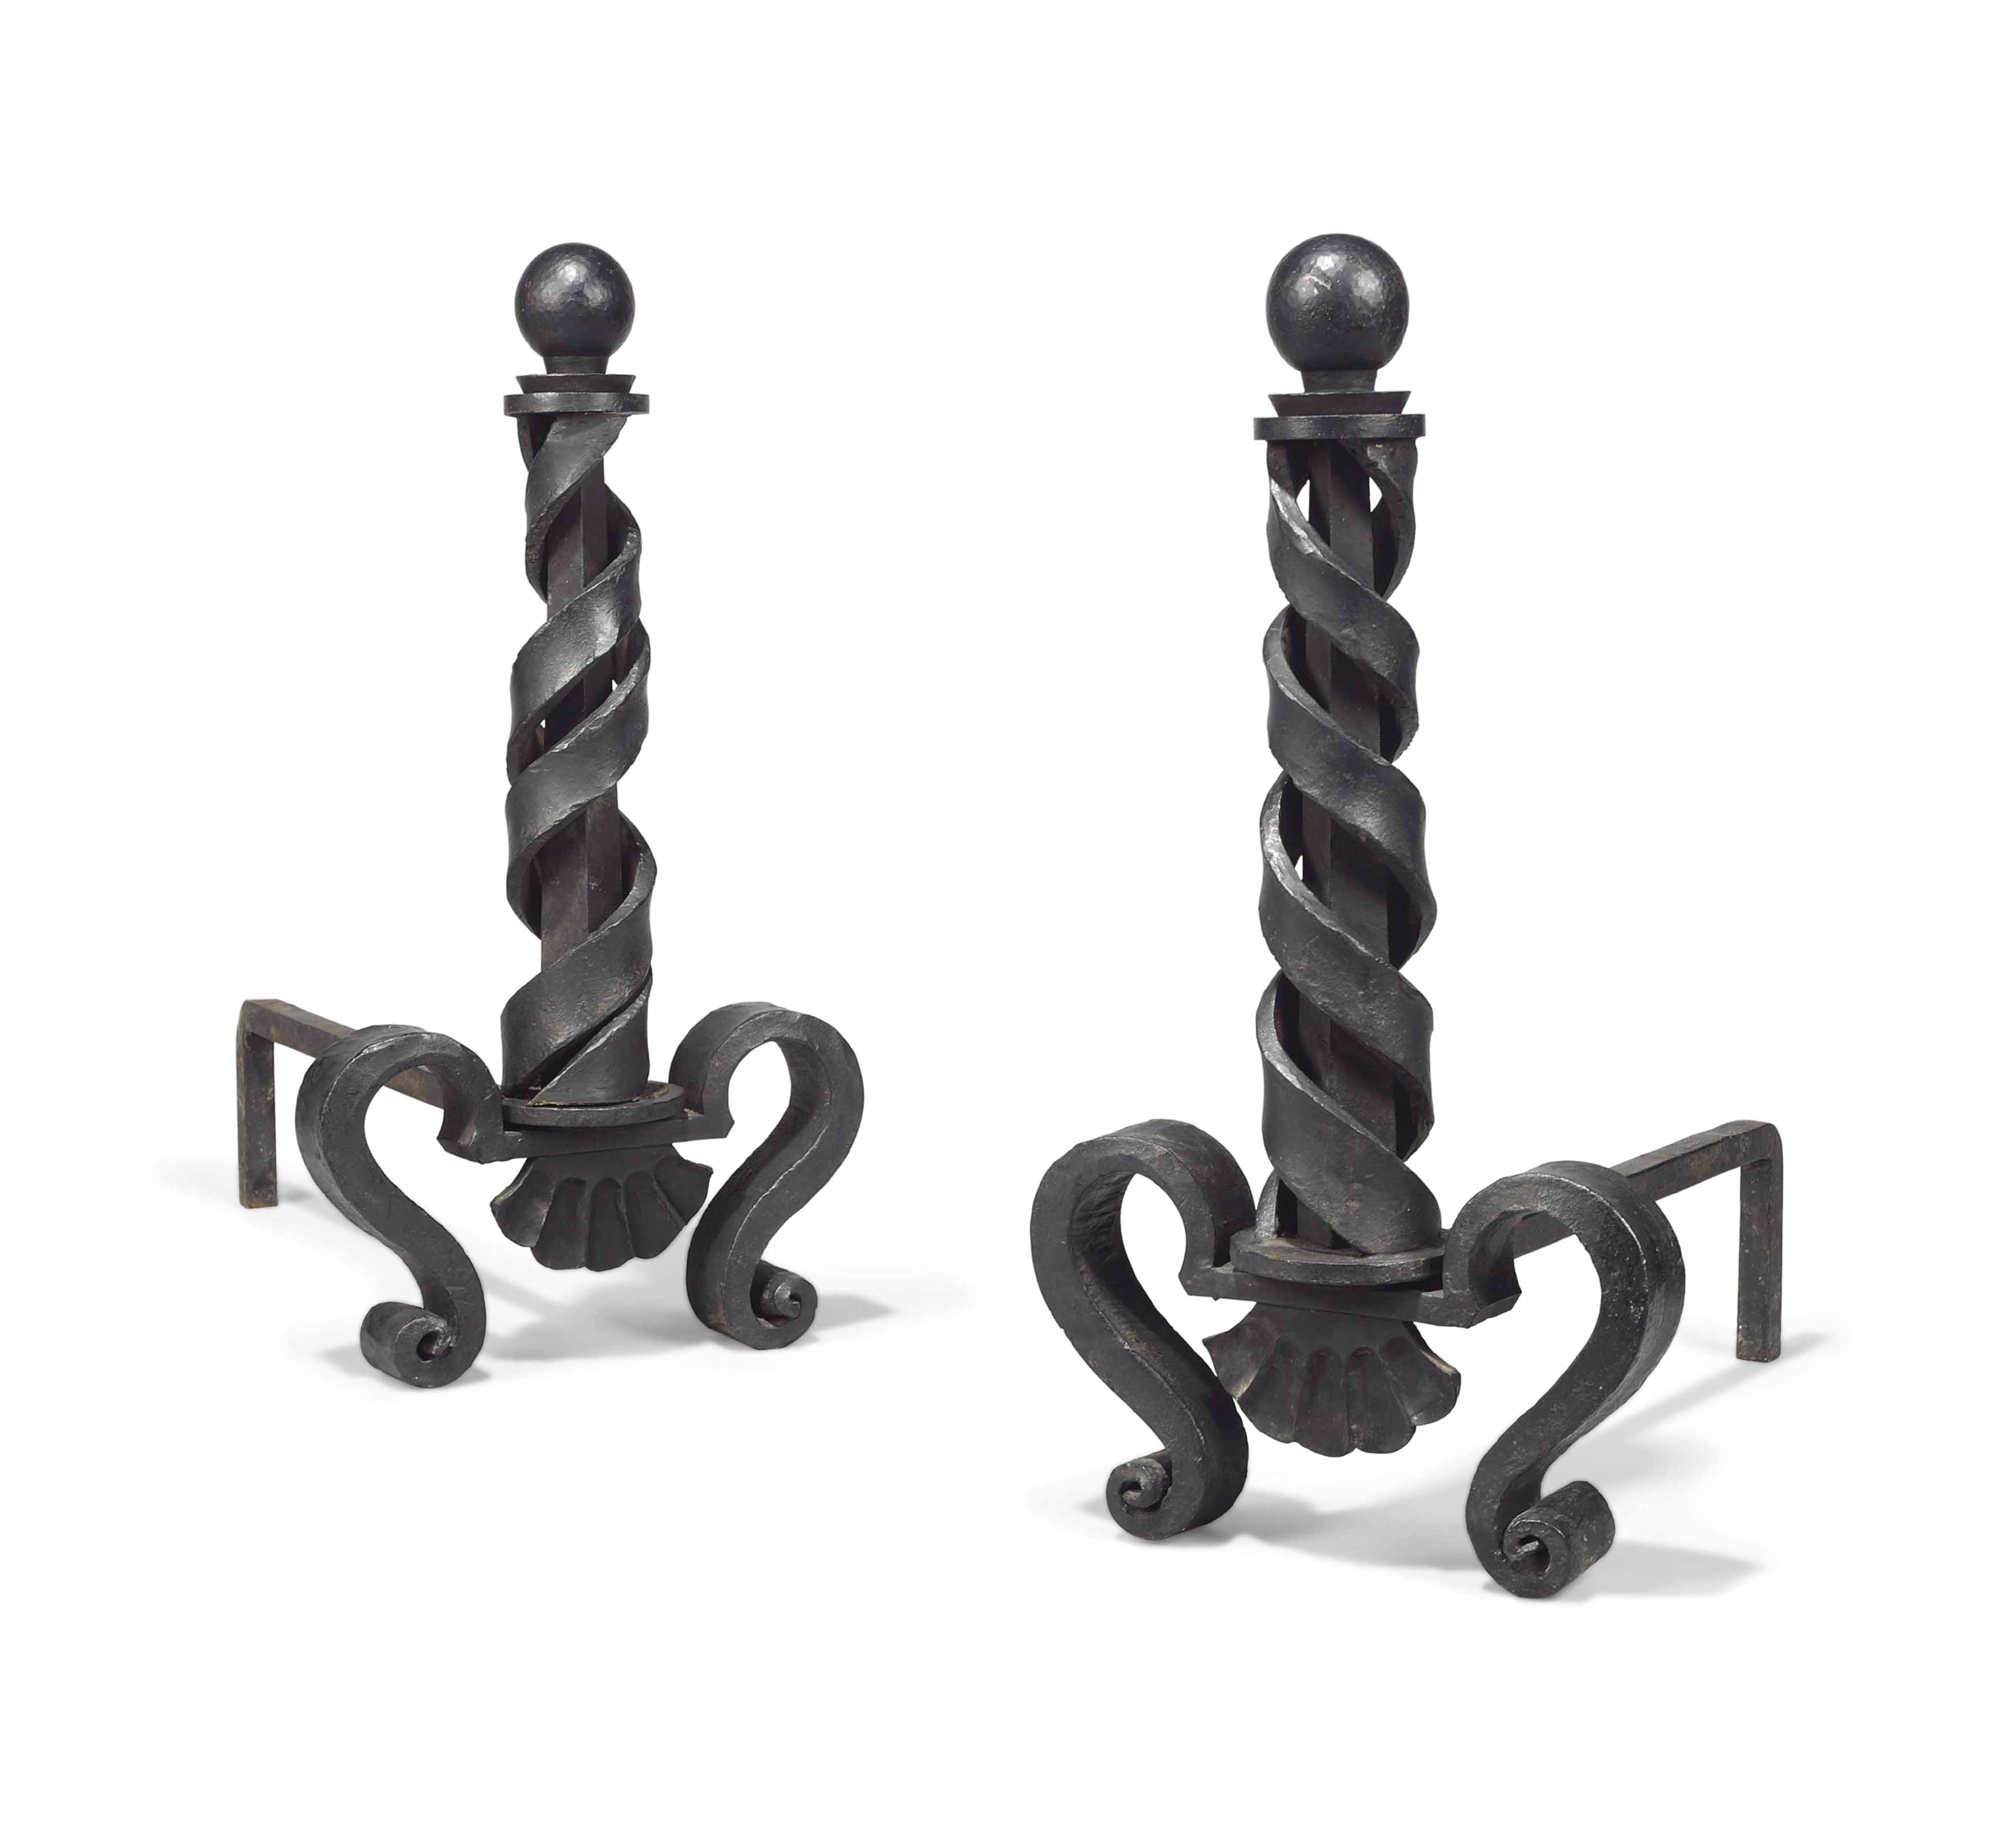 A PAIR OF RAYMOND SUBES (1893-1970) CAST AND WROUGHT IRON ANDIRONS